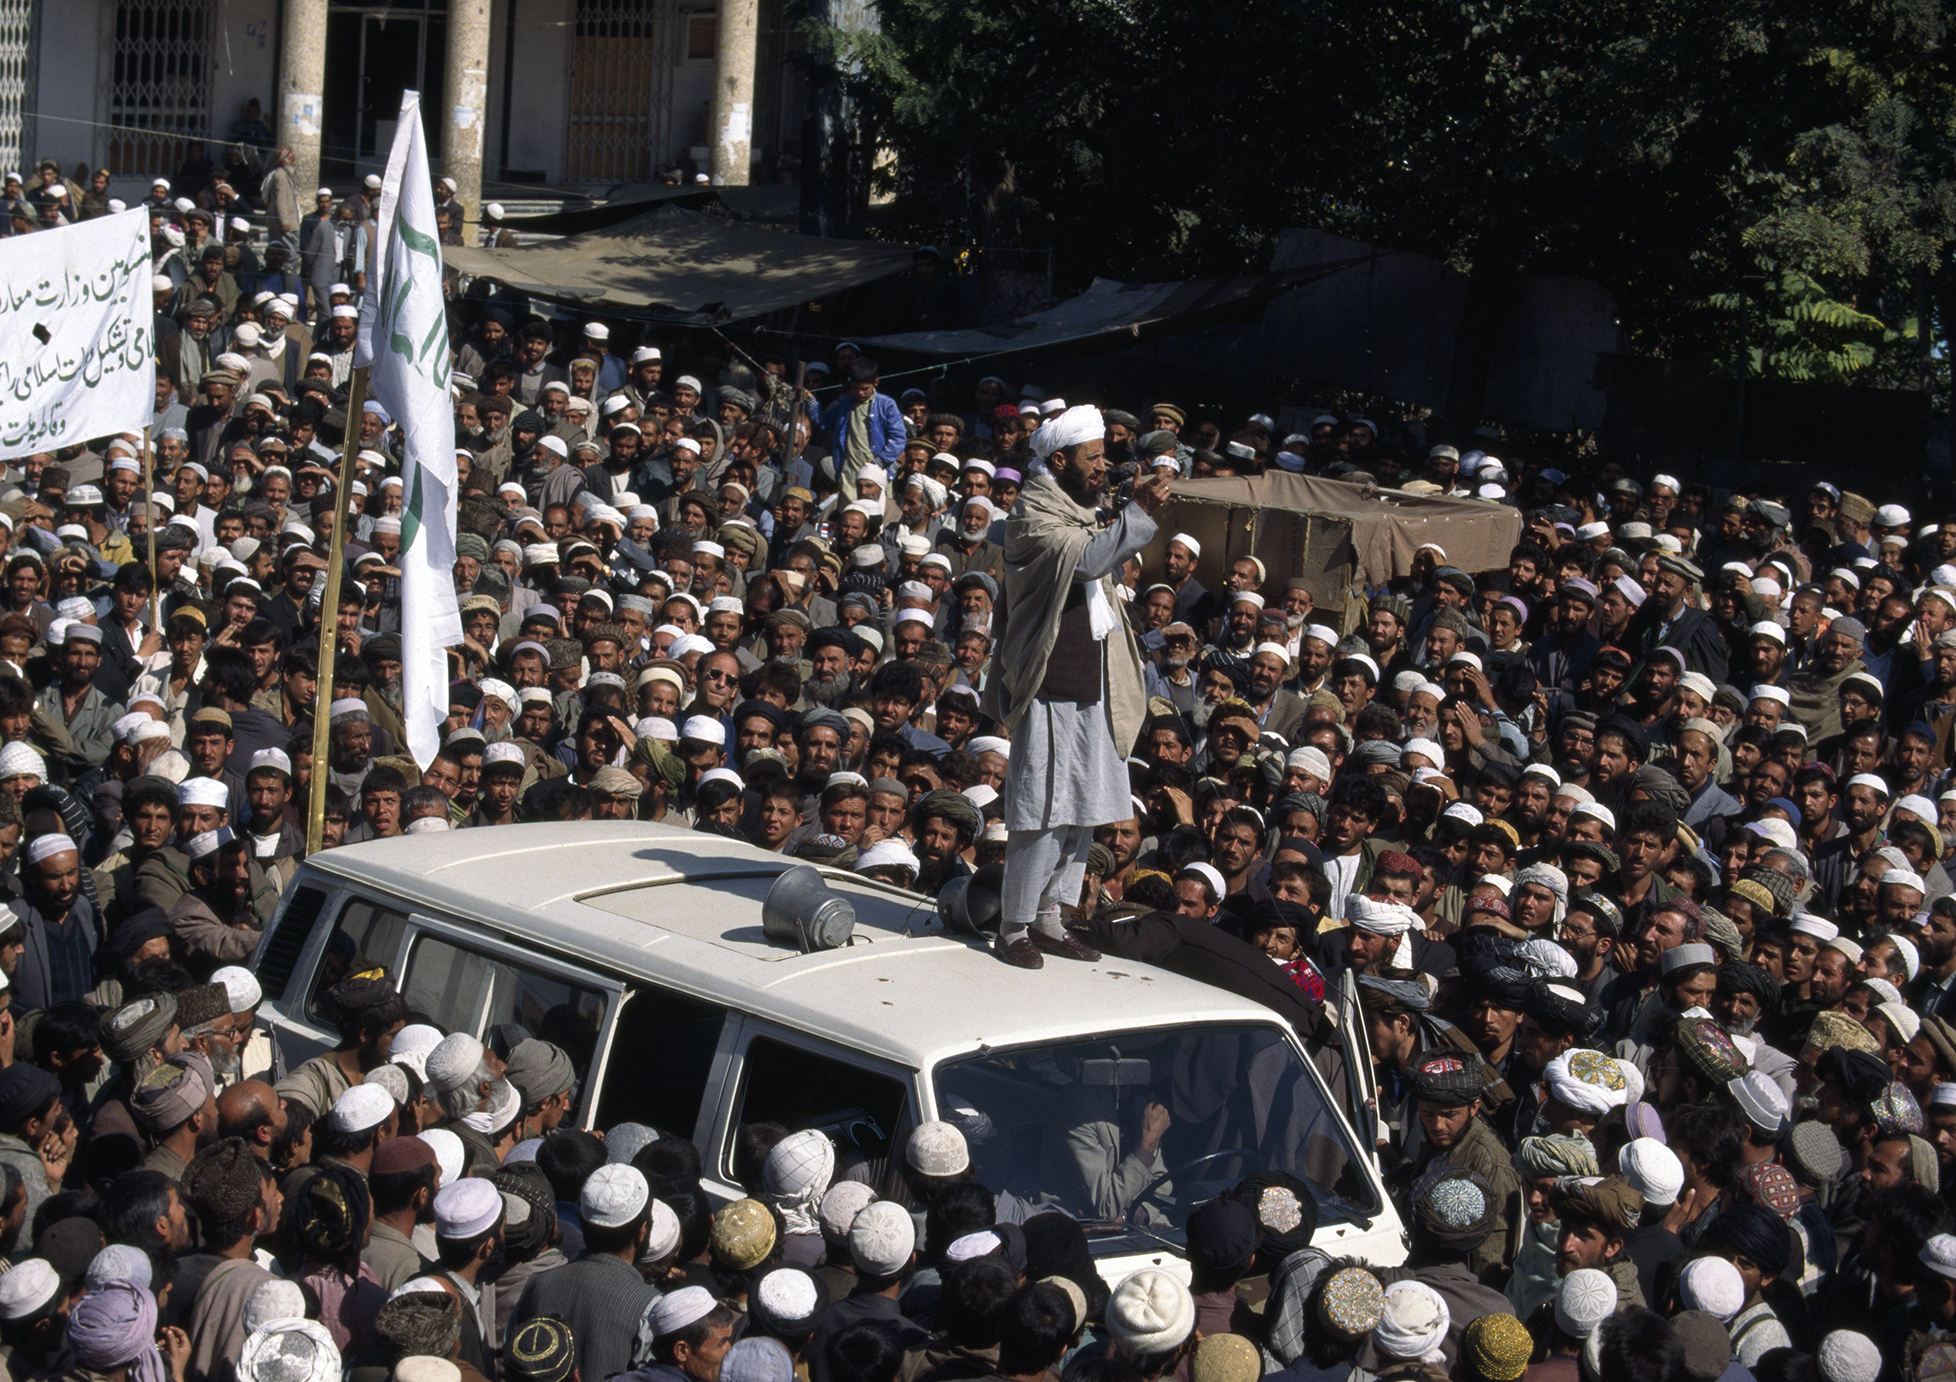 October 1996: A Taliban mullah speaks to a crowd gathered in central Kabul after Taliban forces took control from the Rabbani government.